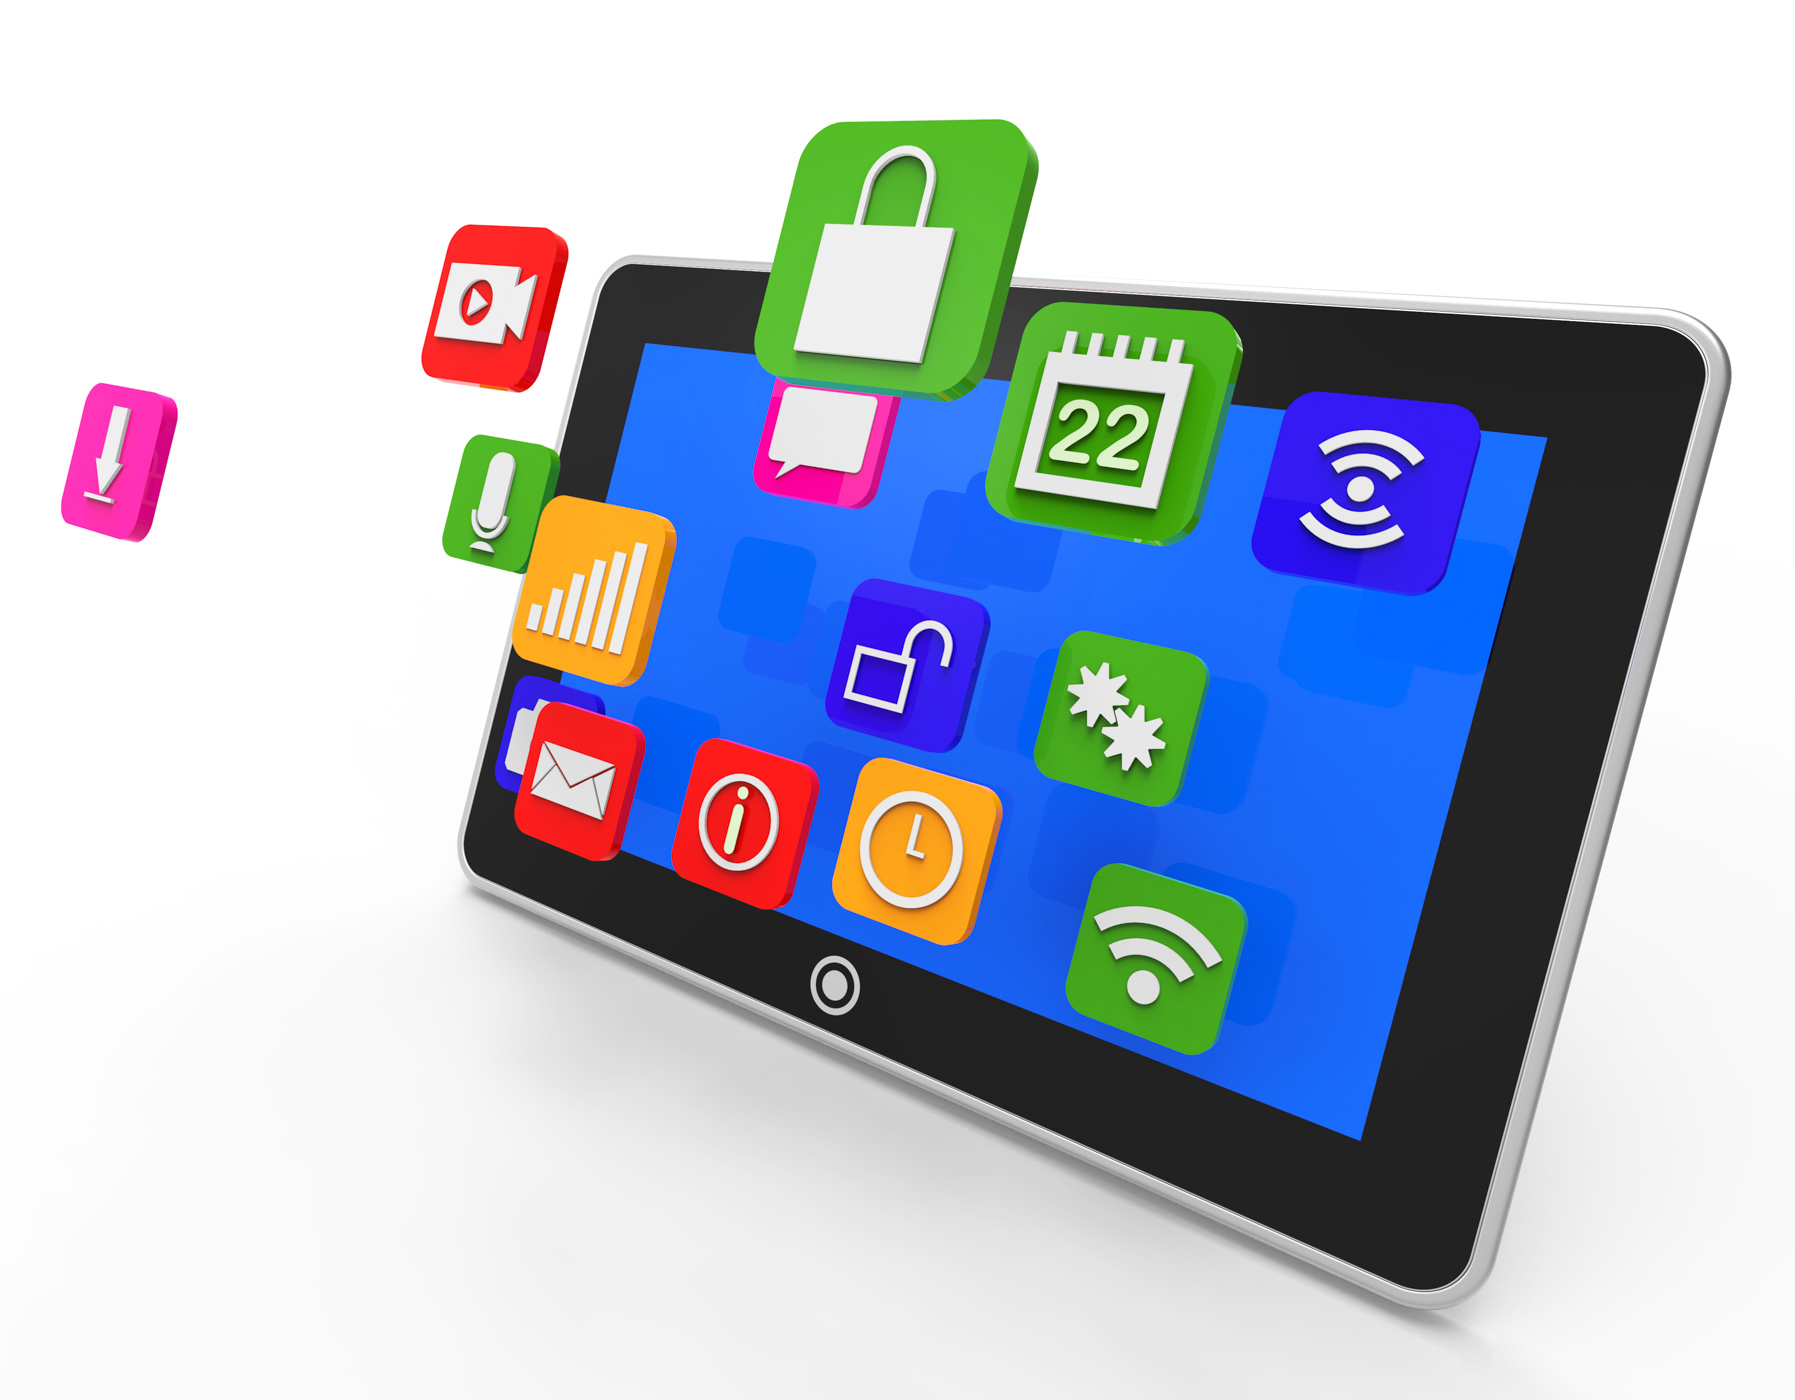 Social media tablet shows computer apps and portable photo